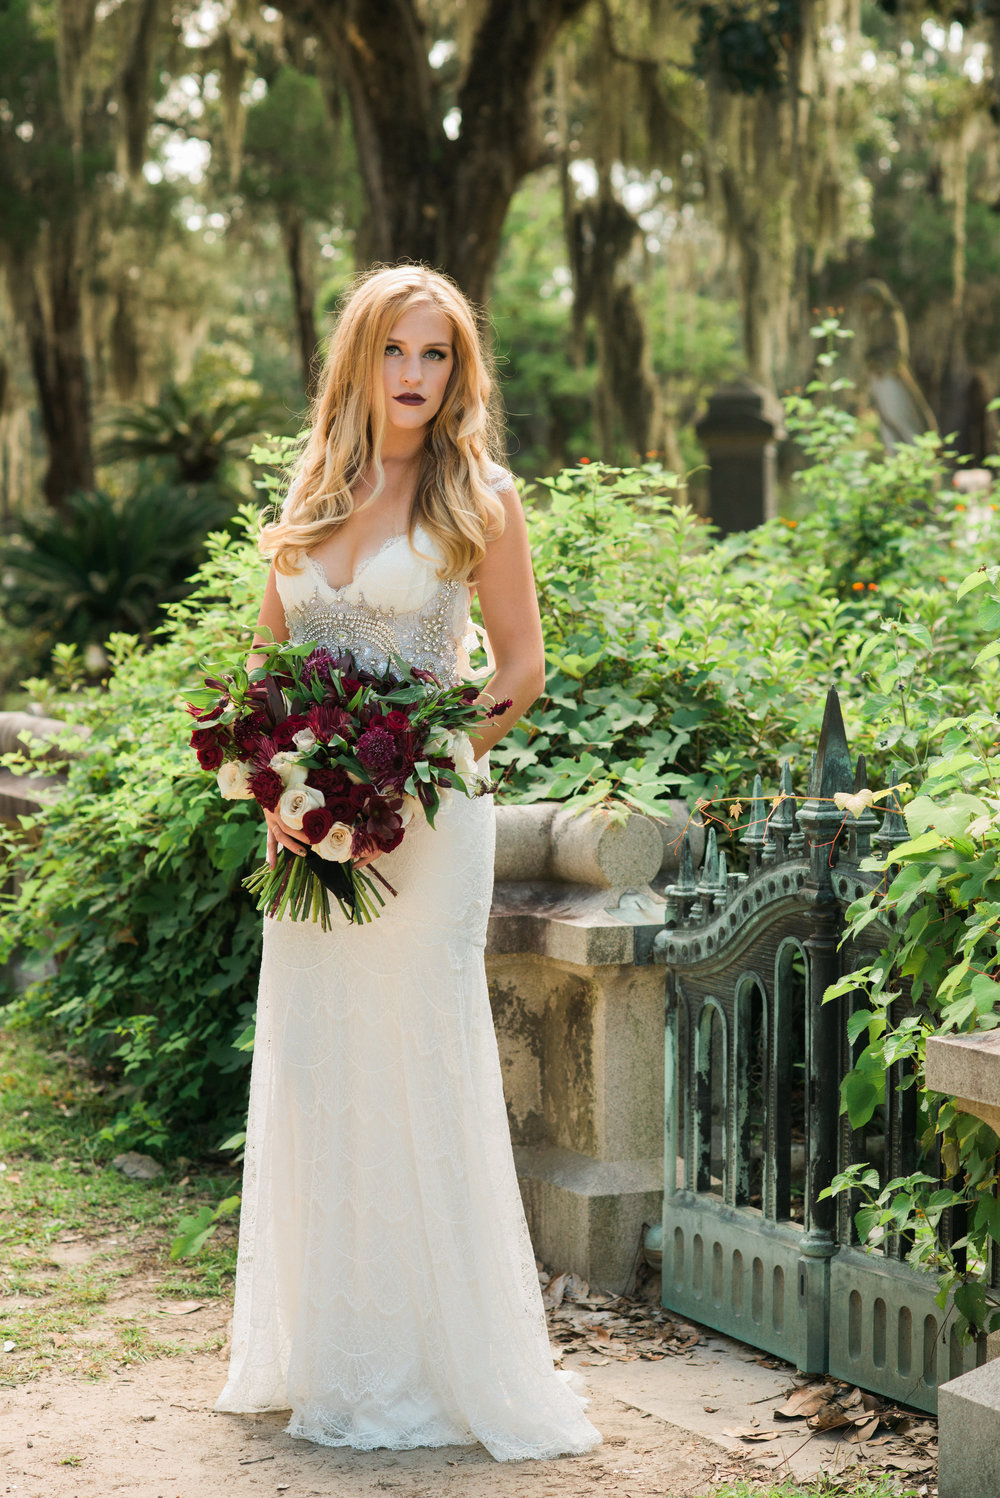 callie-beale-photography-Bonaventure-cemetery-michelle-royal-makeup-cemetery-wedding-ivory-and-beau-wedding-planning-anna-campbell-harper-savannah-bridal-boutique-savannah-wedding-dresses-savannah-weddings-8.jpg